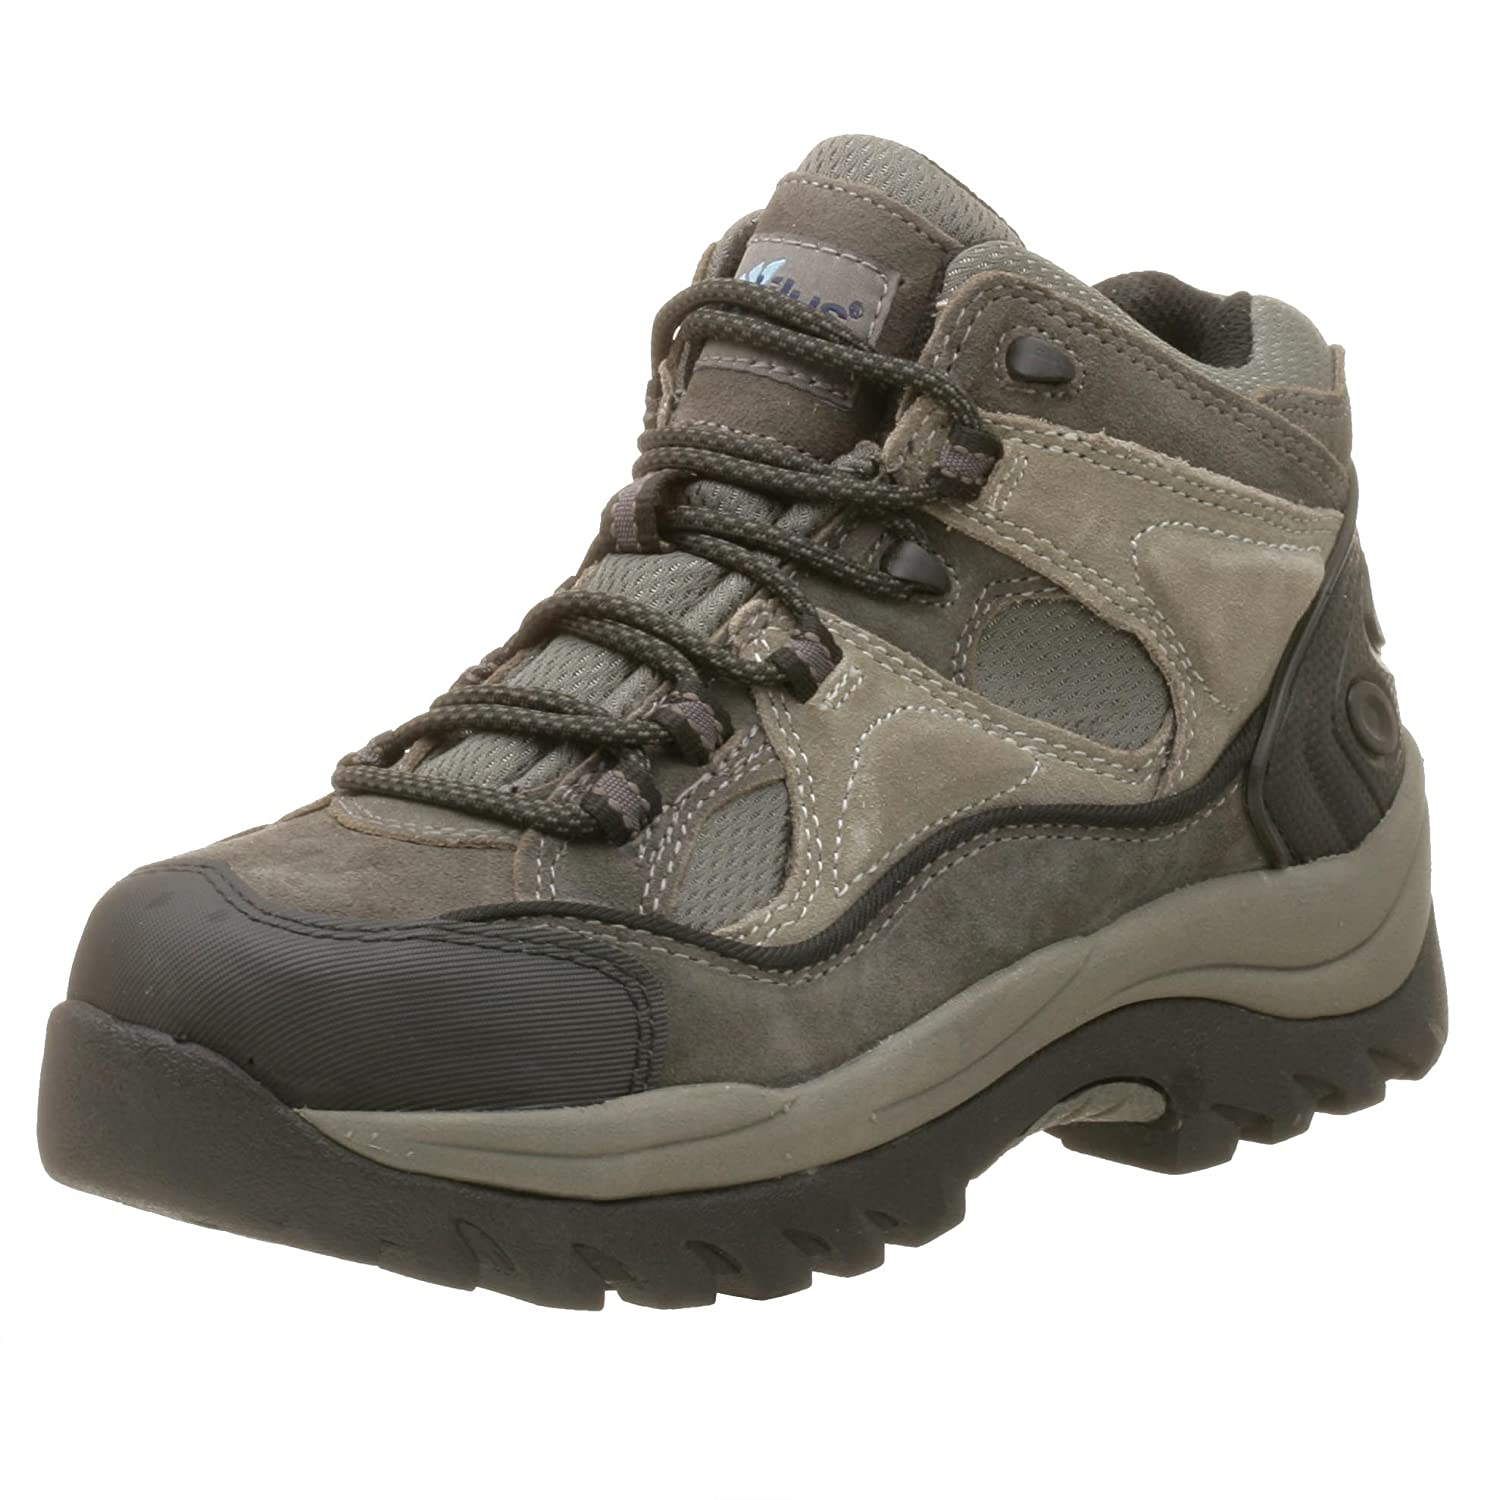 Nautilus Safety Footwear メンズ B000IX33TE 8 D(M) US|グレー グレー 8 D(M) US